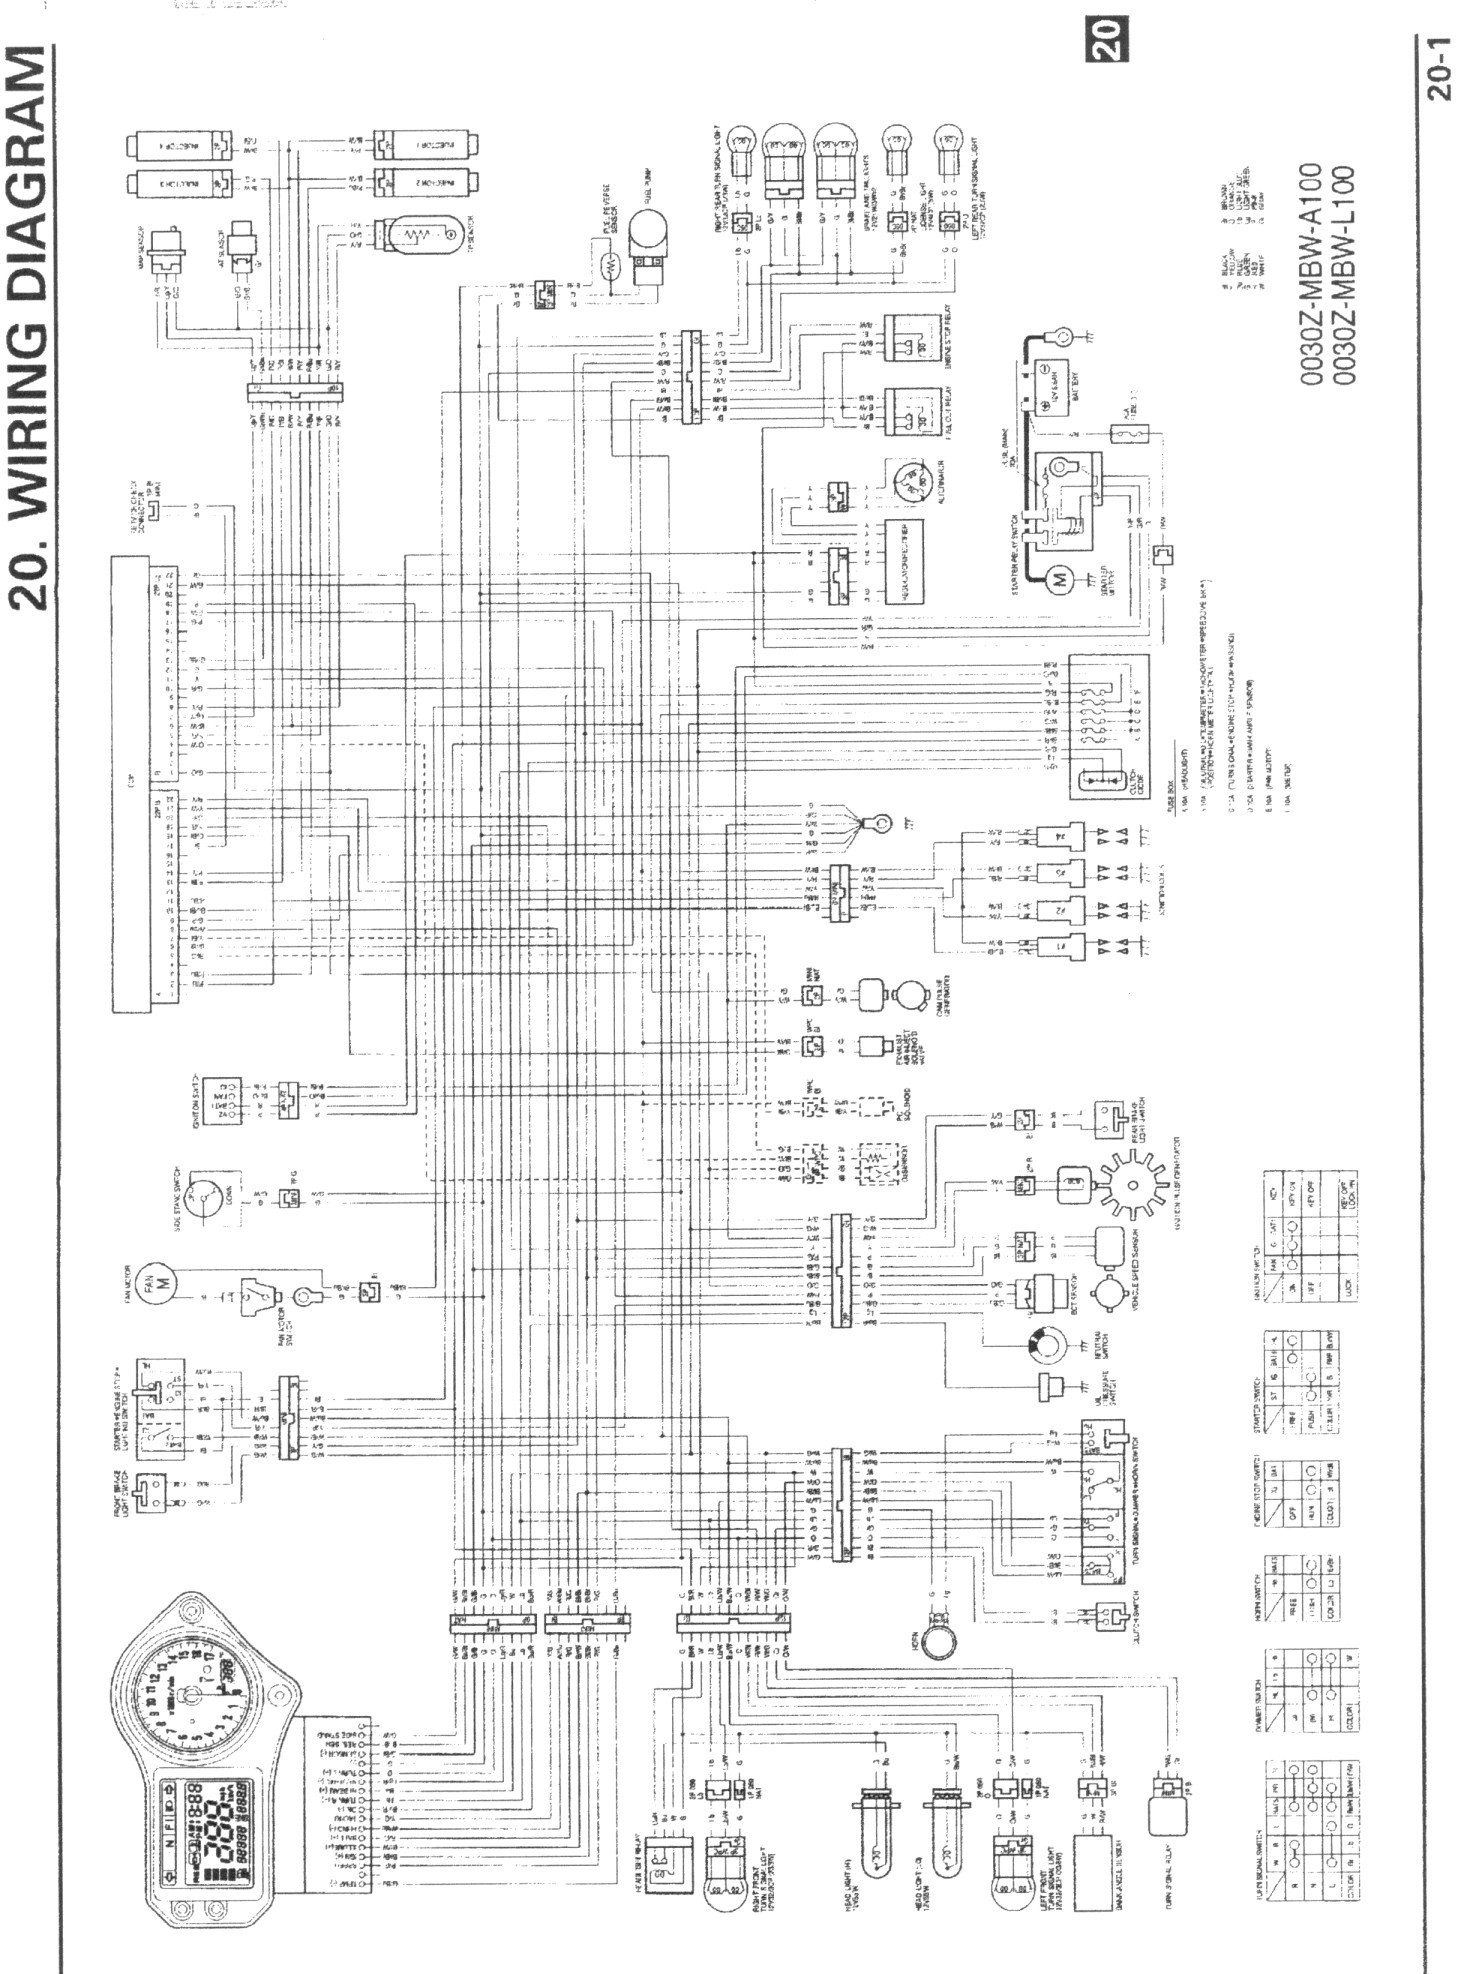 2005 Cbr F4i Wiring Diagram - f4i wiring diagram e250 ... F I Wiring Diagram Main on